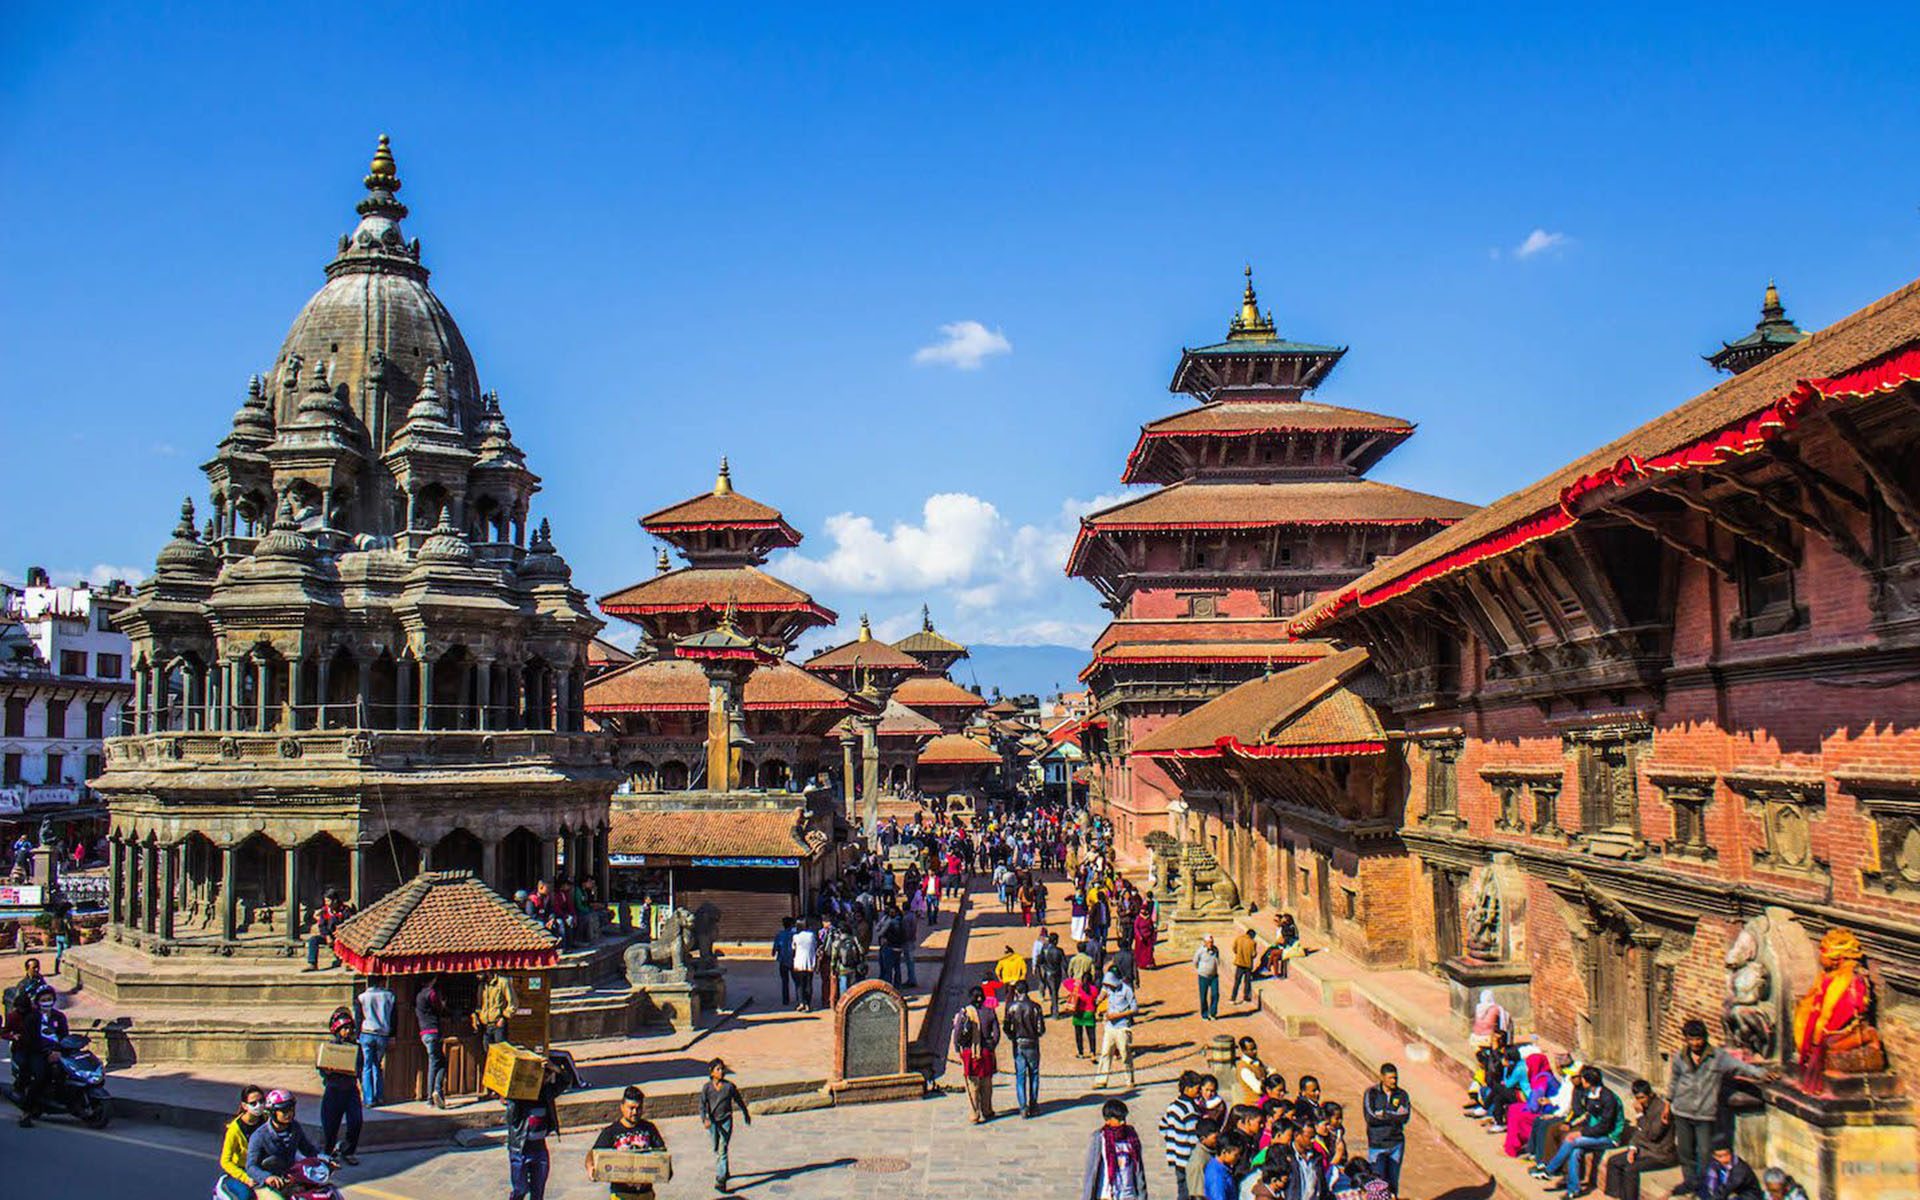 Capture the landscapes, lifestyle & culture of Nepal